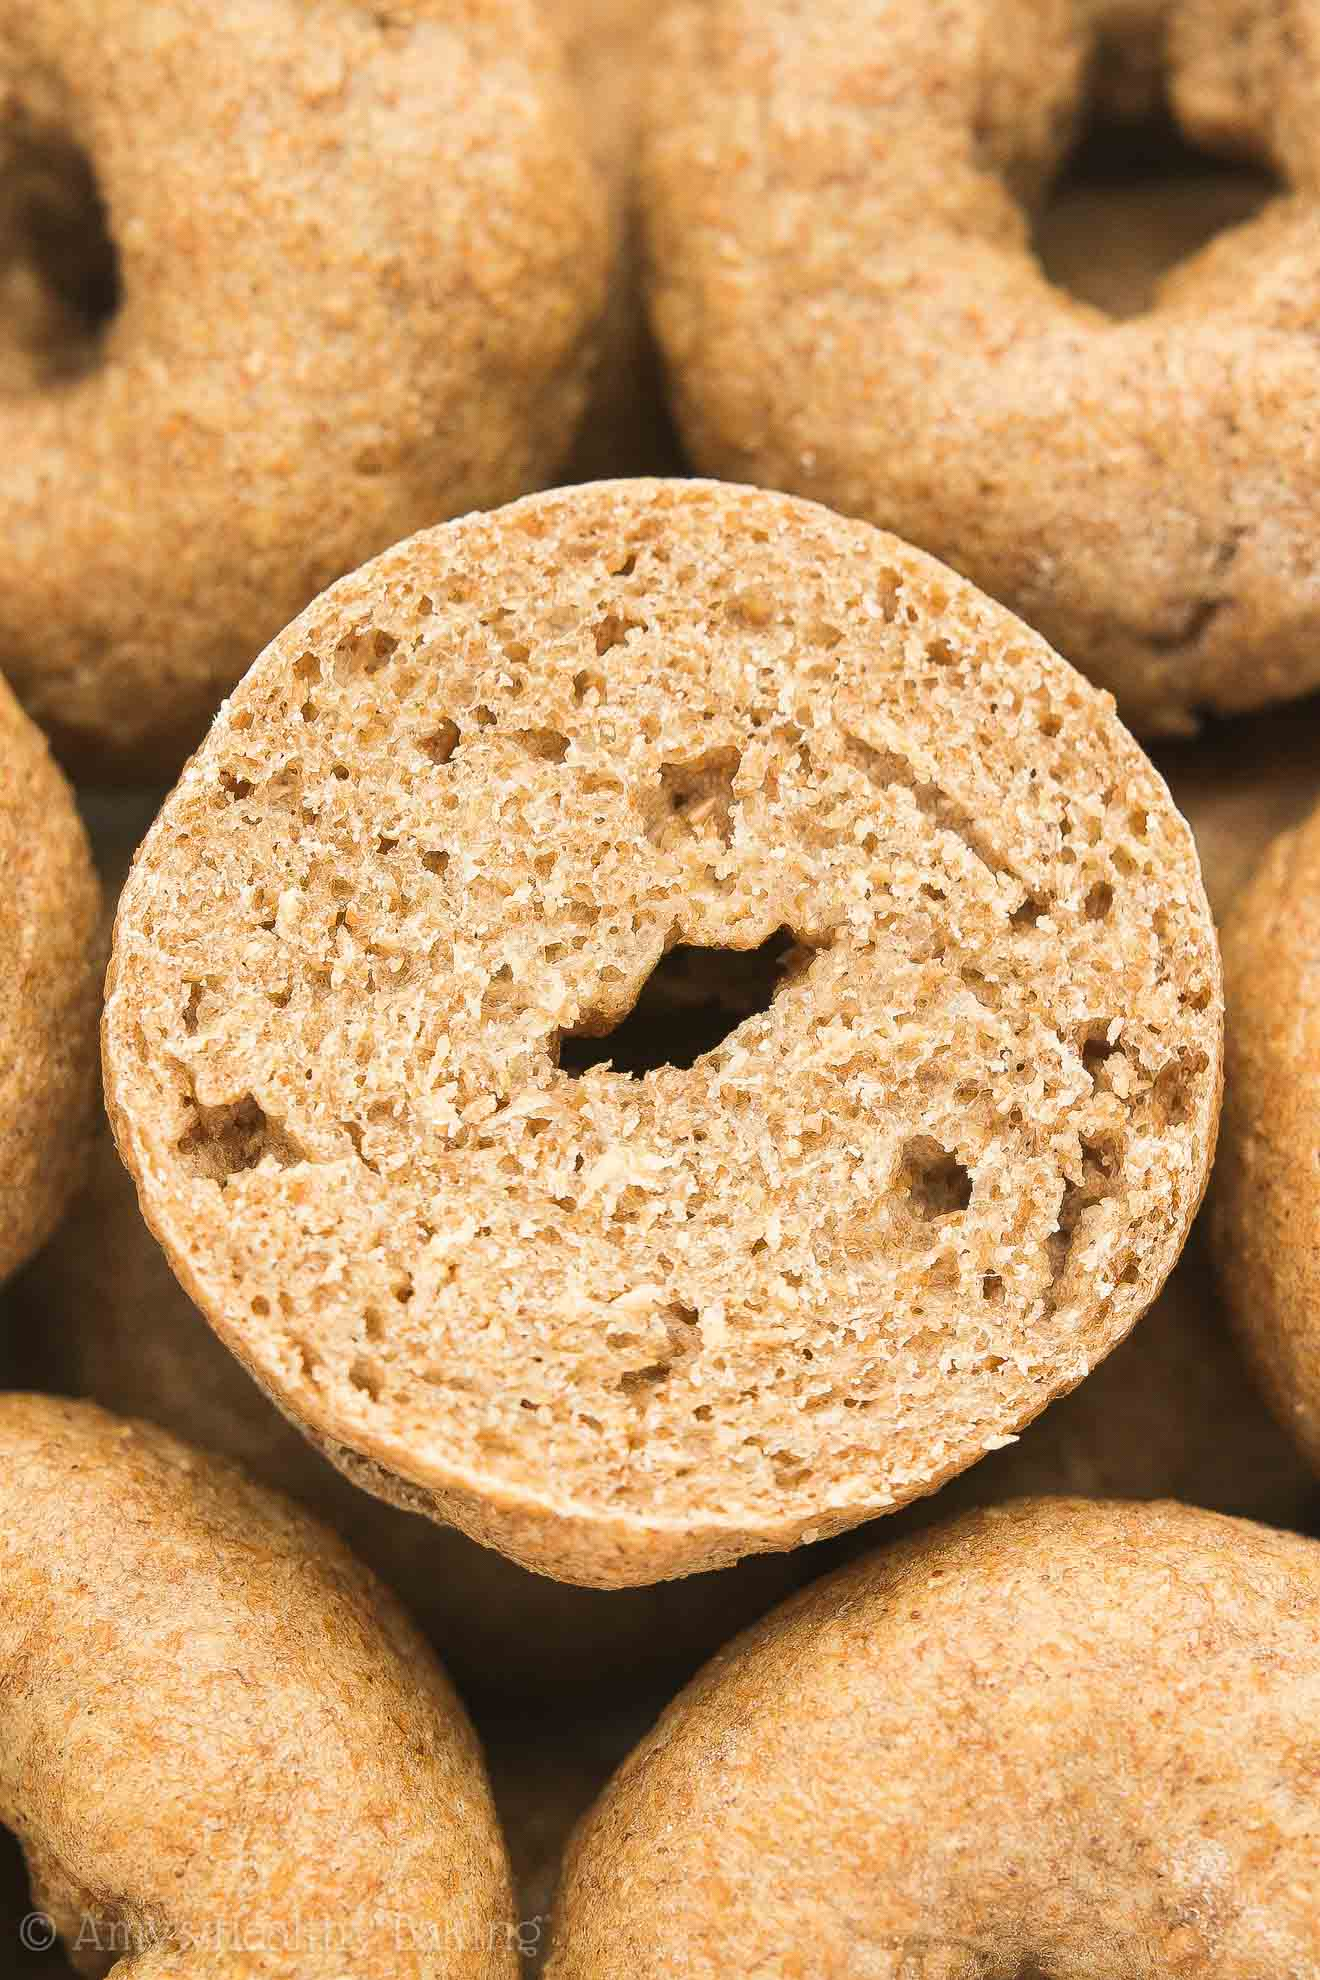 An ULTIMATE Healthy Homemade Mini Bagel, sliced in half